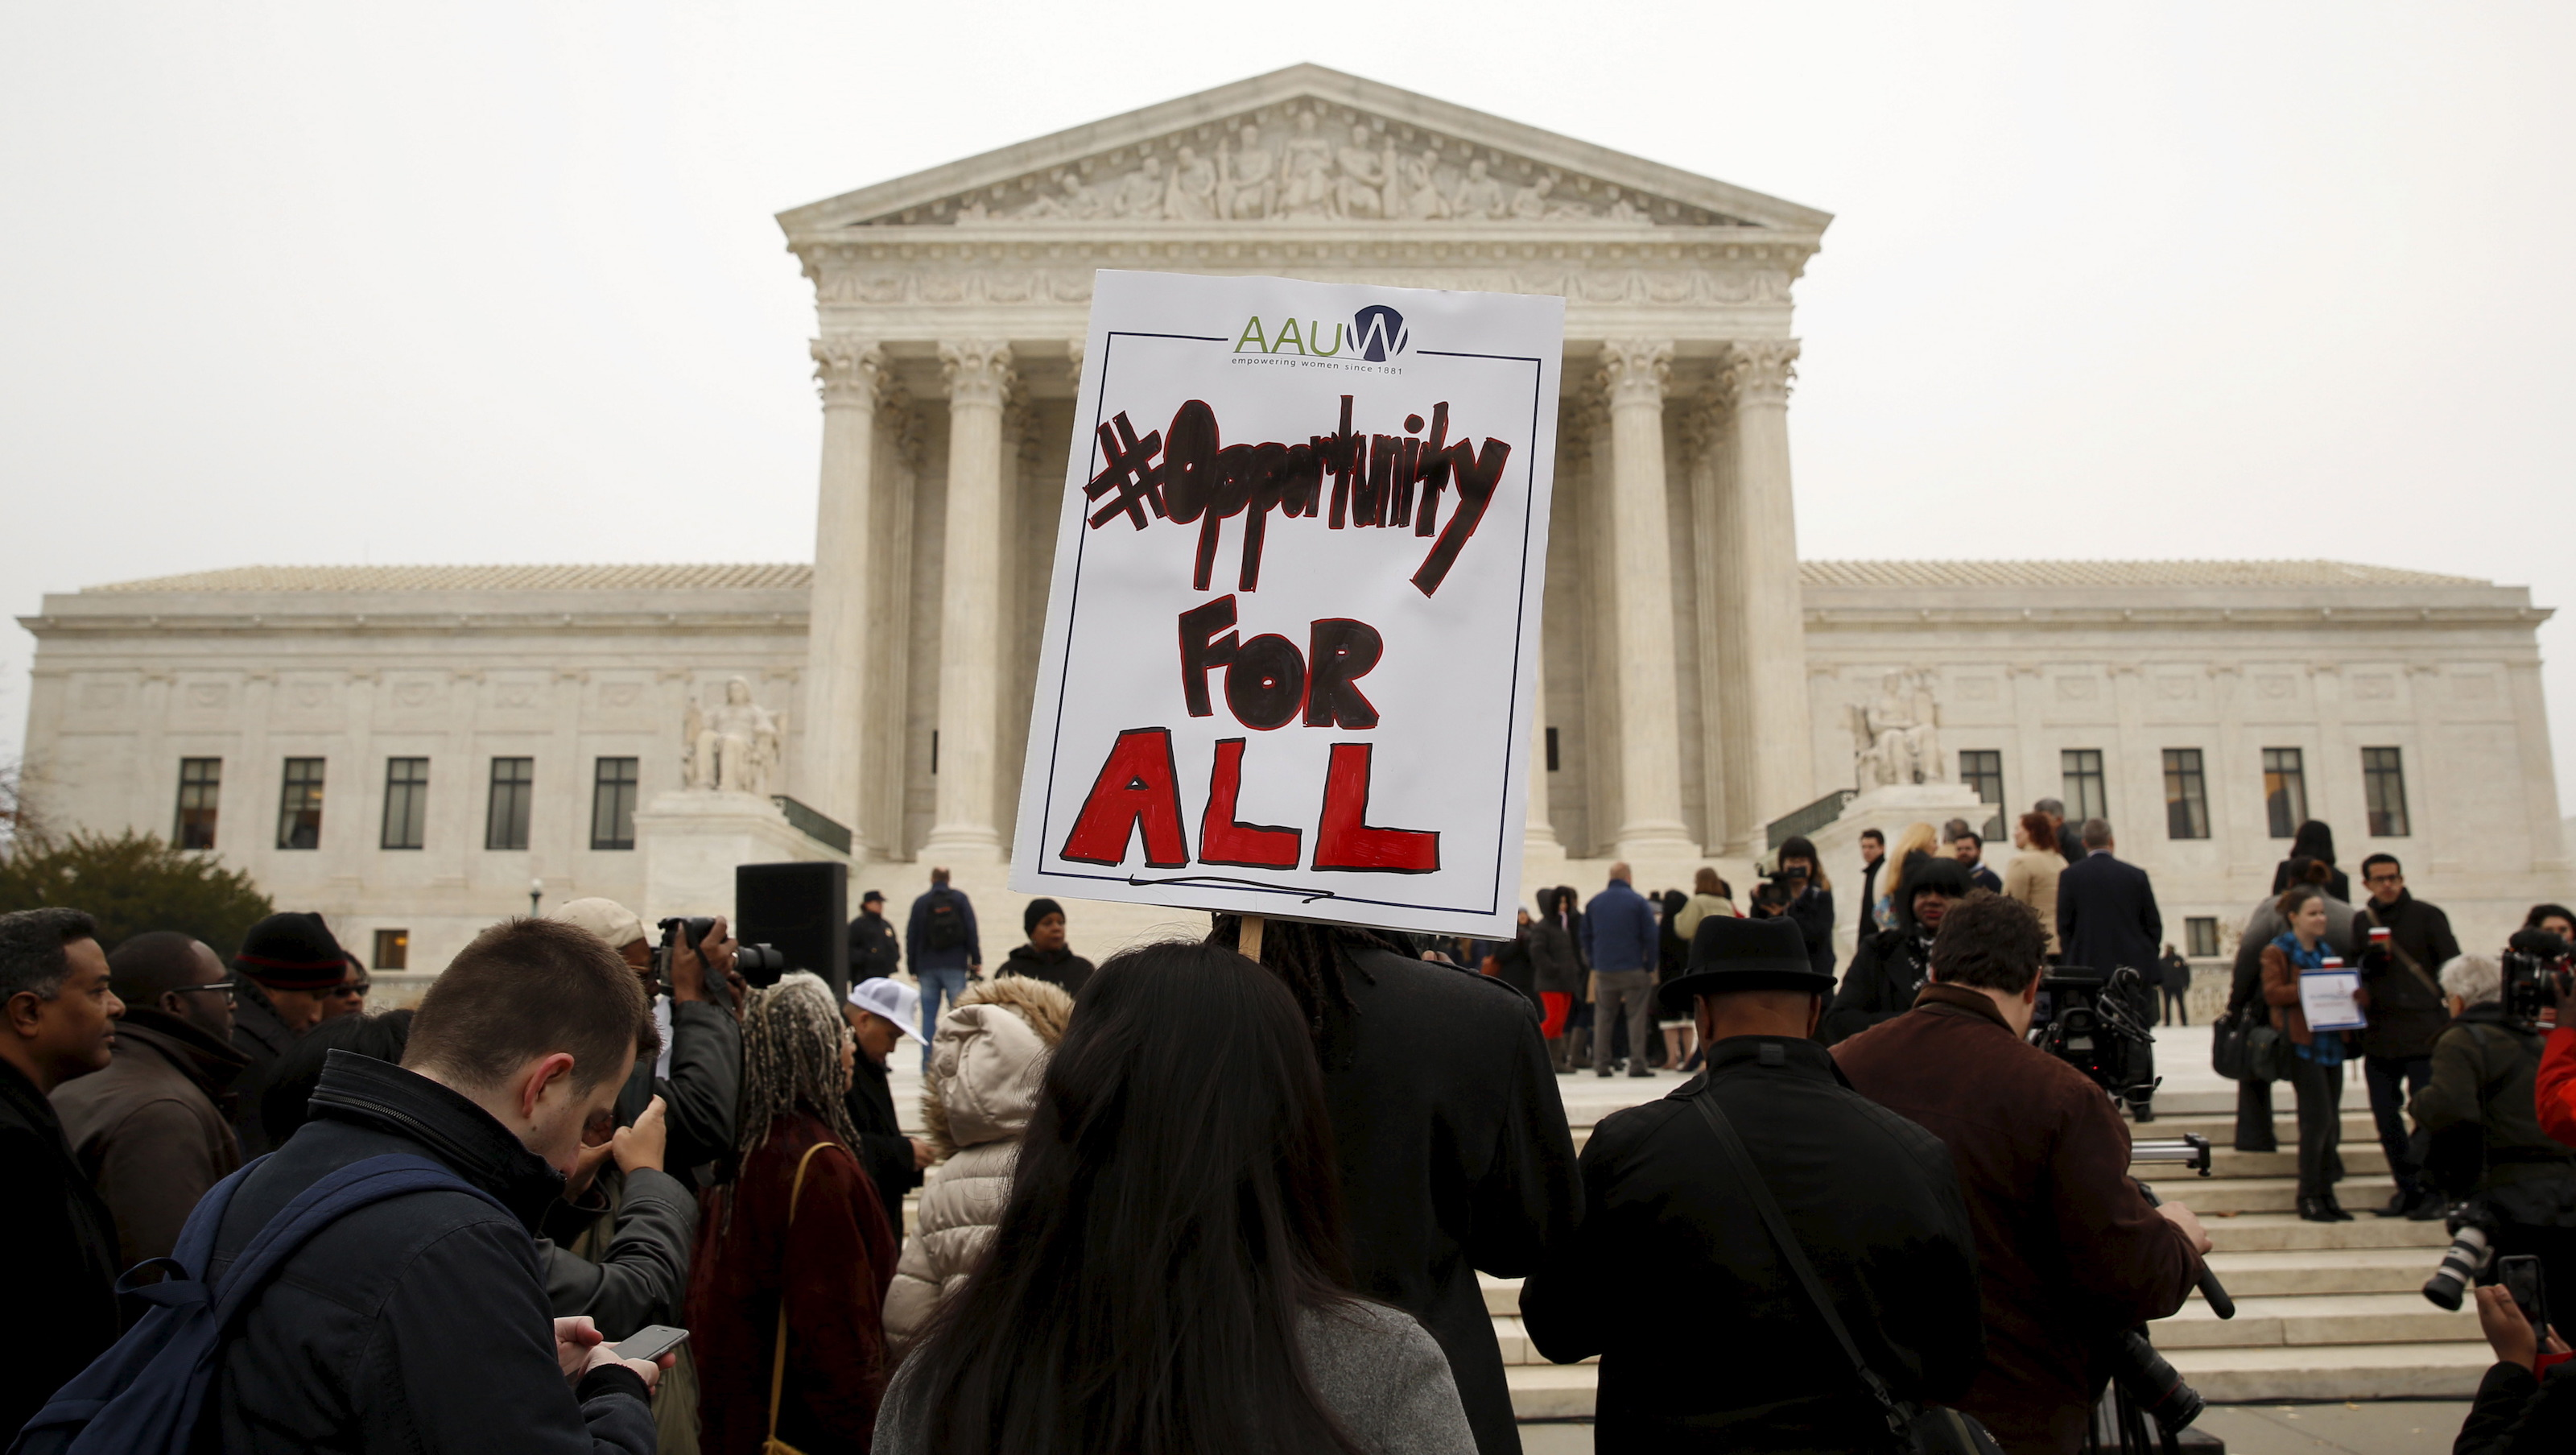 A US Supreme Court ruling upholds the use of affirmative